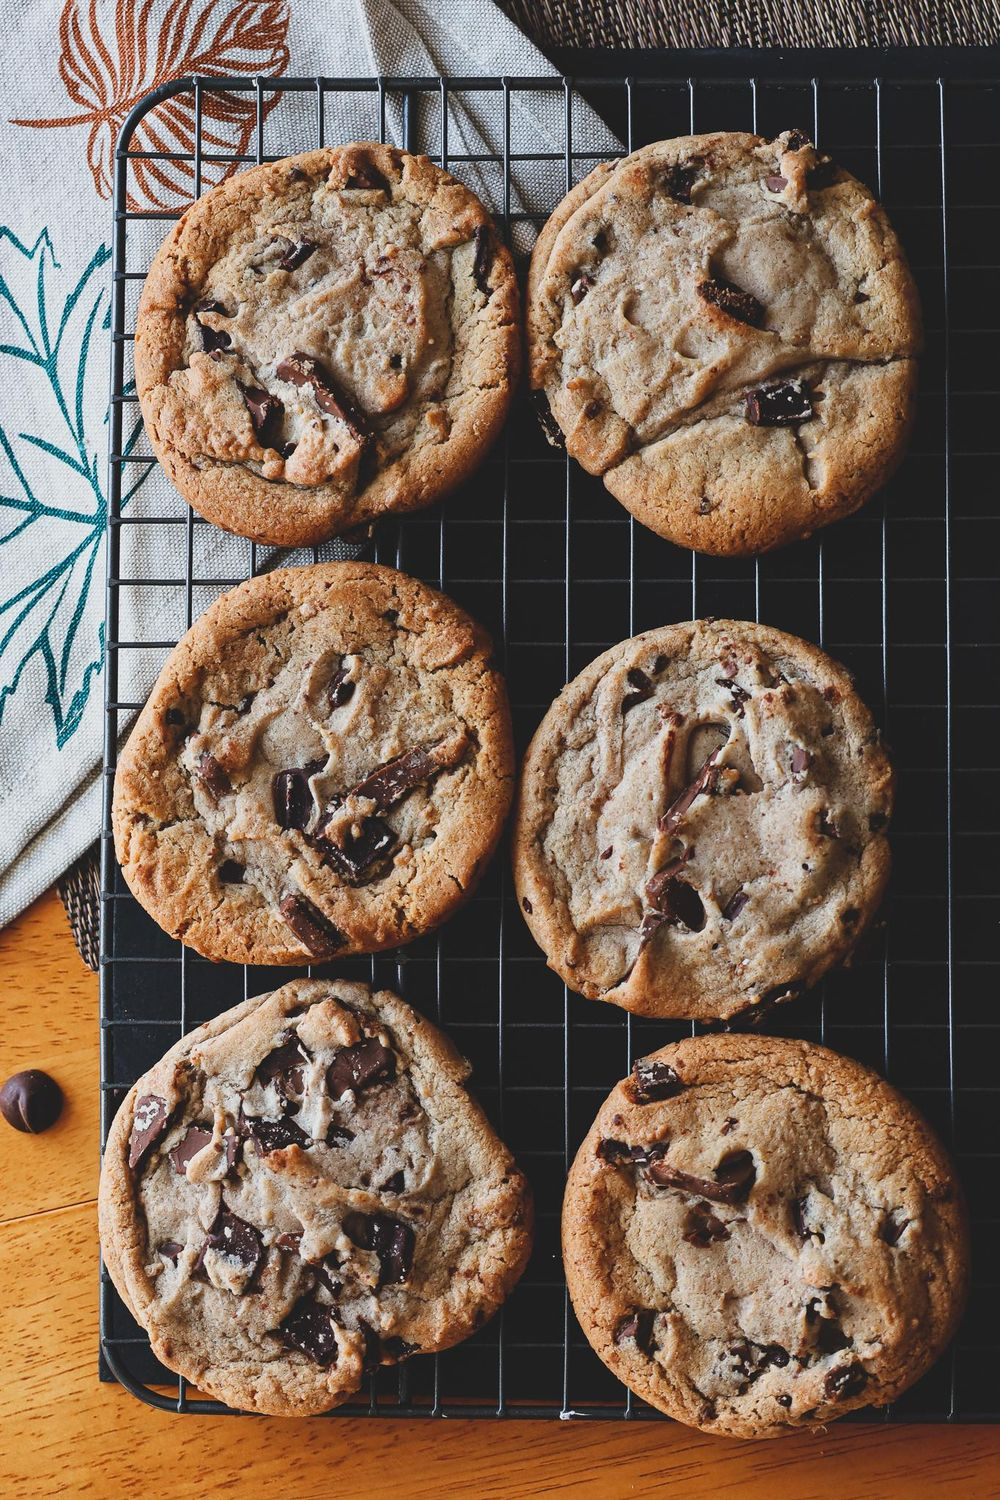 chocolate chip. - image 1 - student project